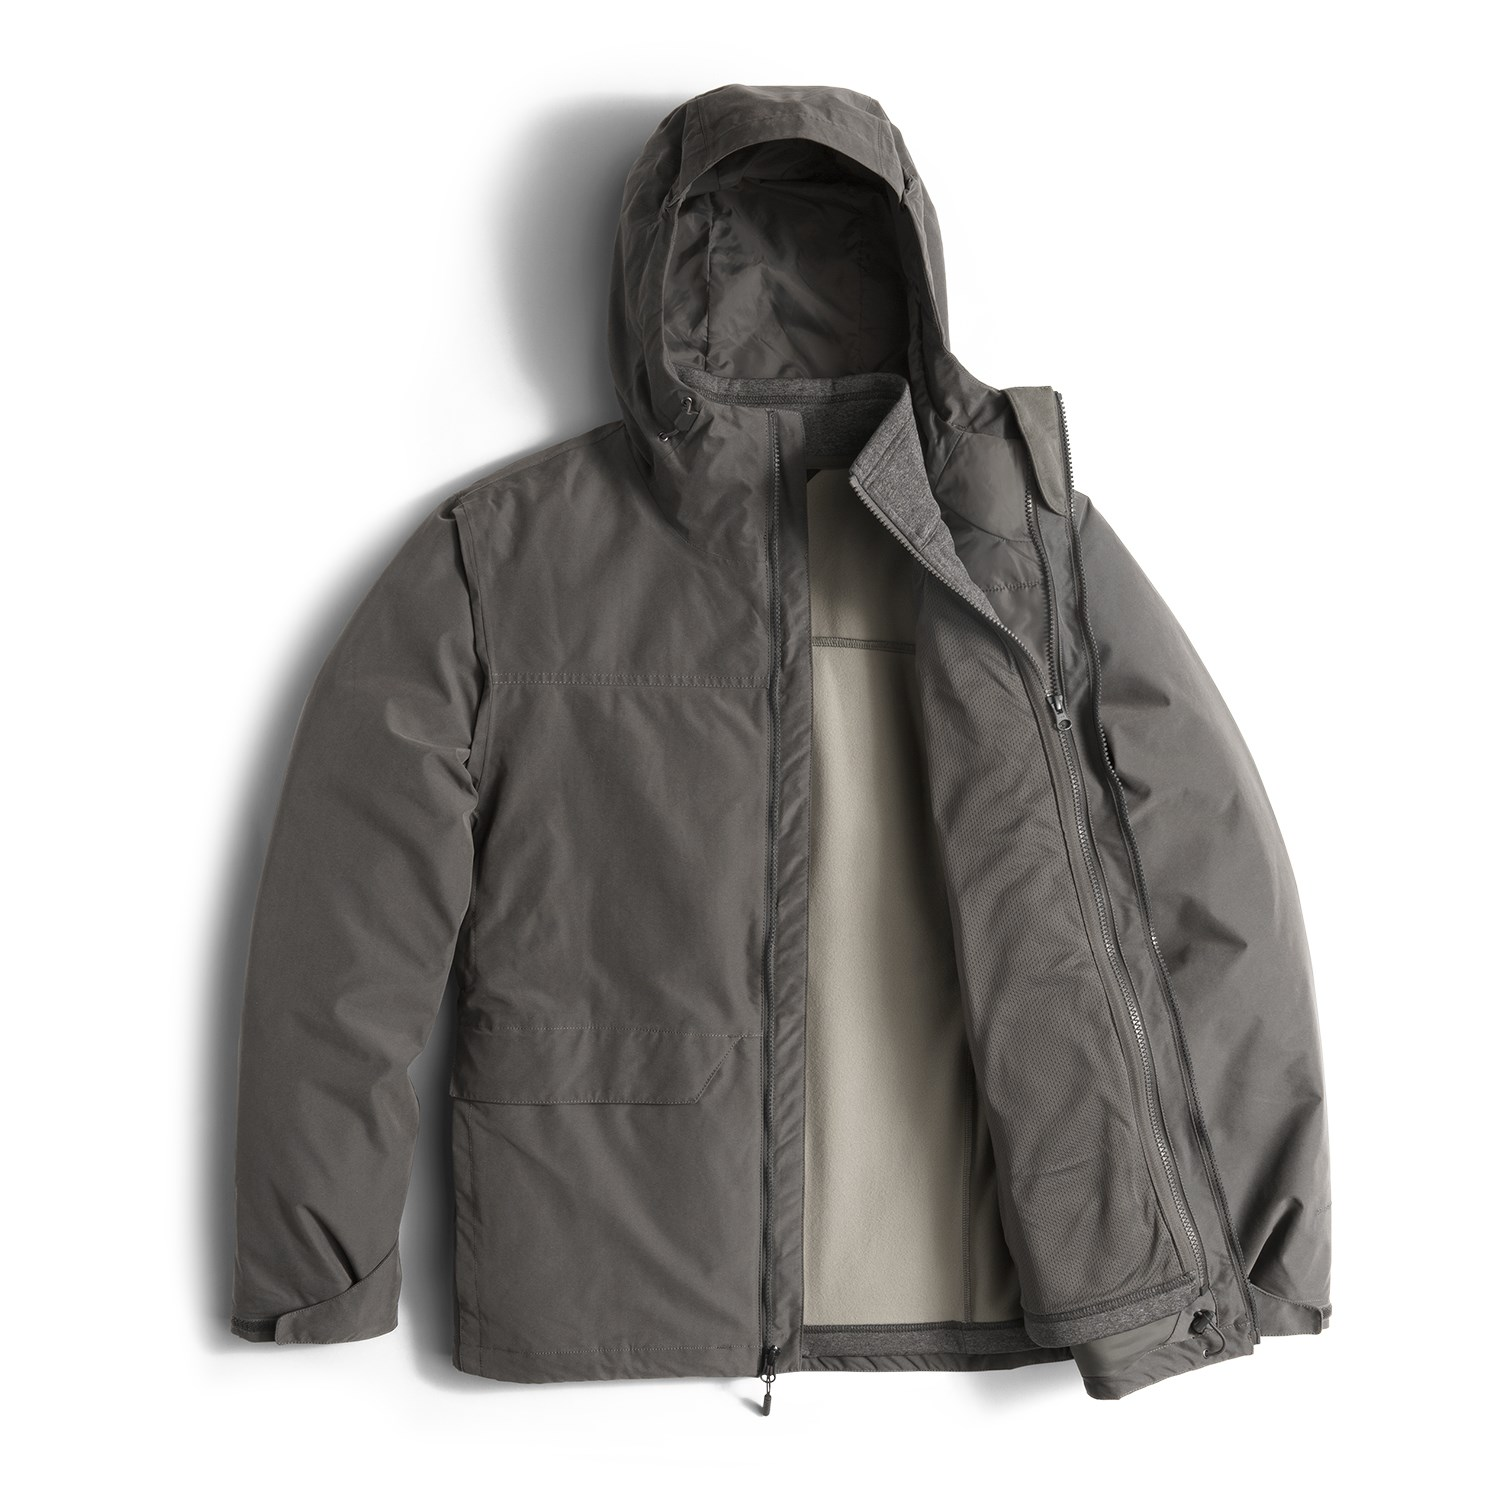 41869f9fc4b5 The North Face Canyonlands Triclimate® Jacket